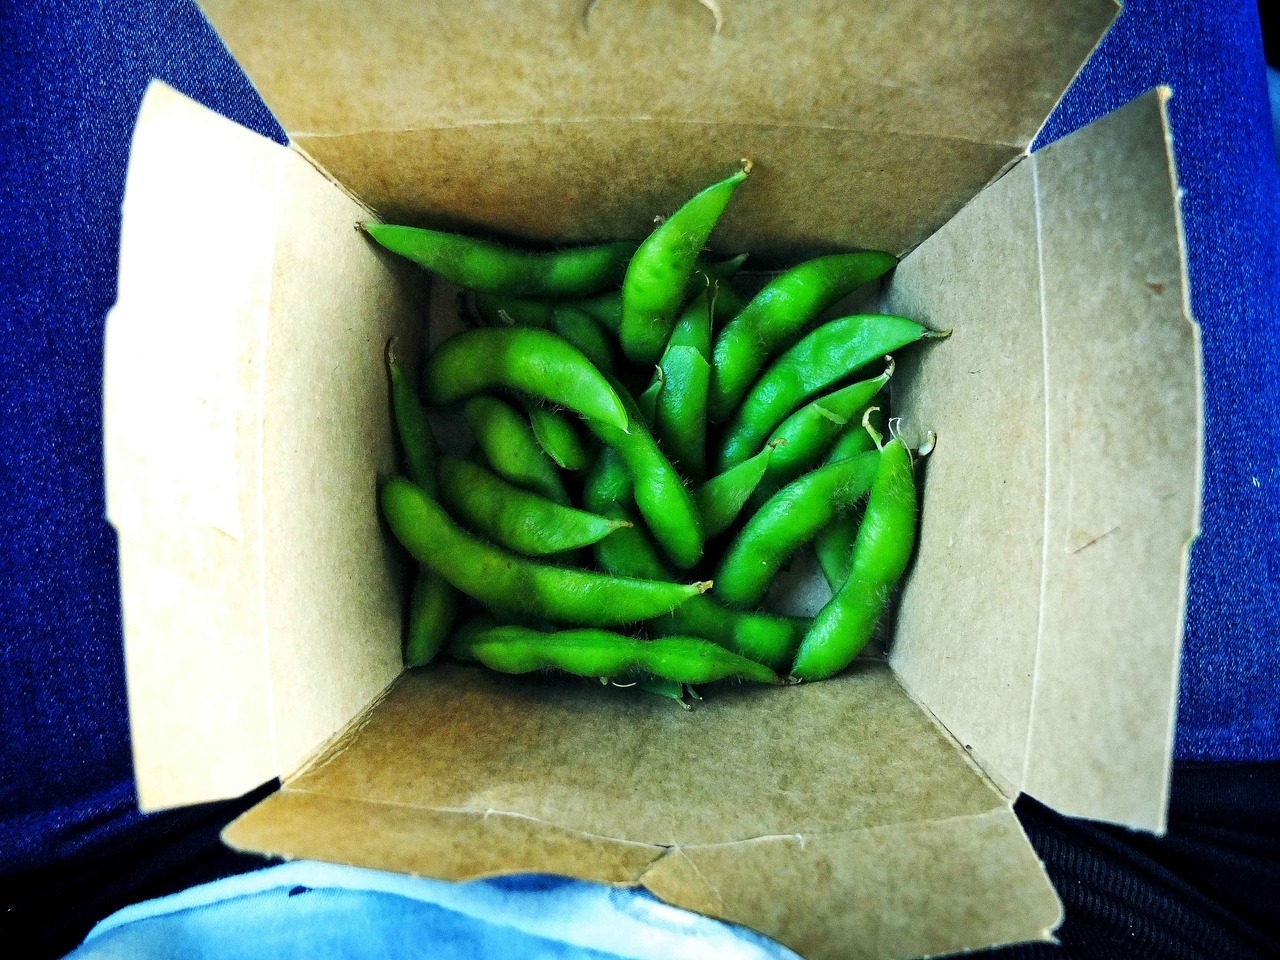 Mmmm, Edamame. My current snack addiction of choice :)